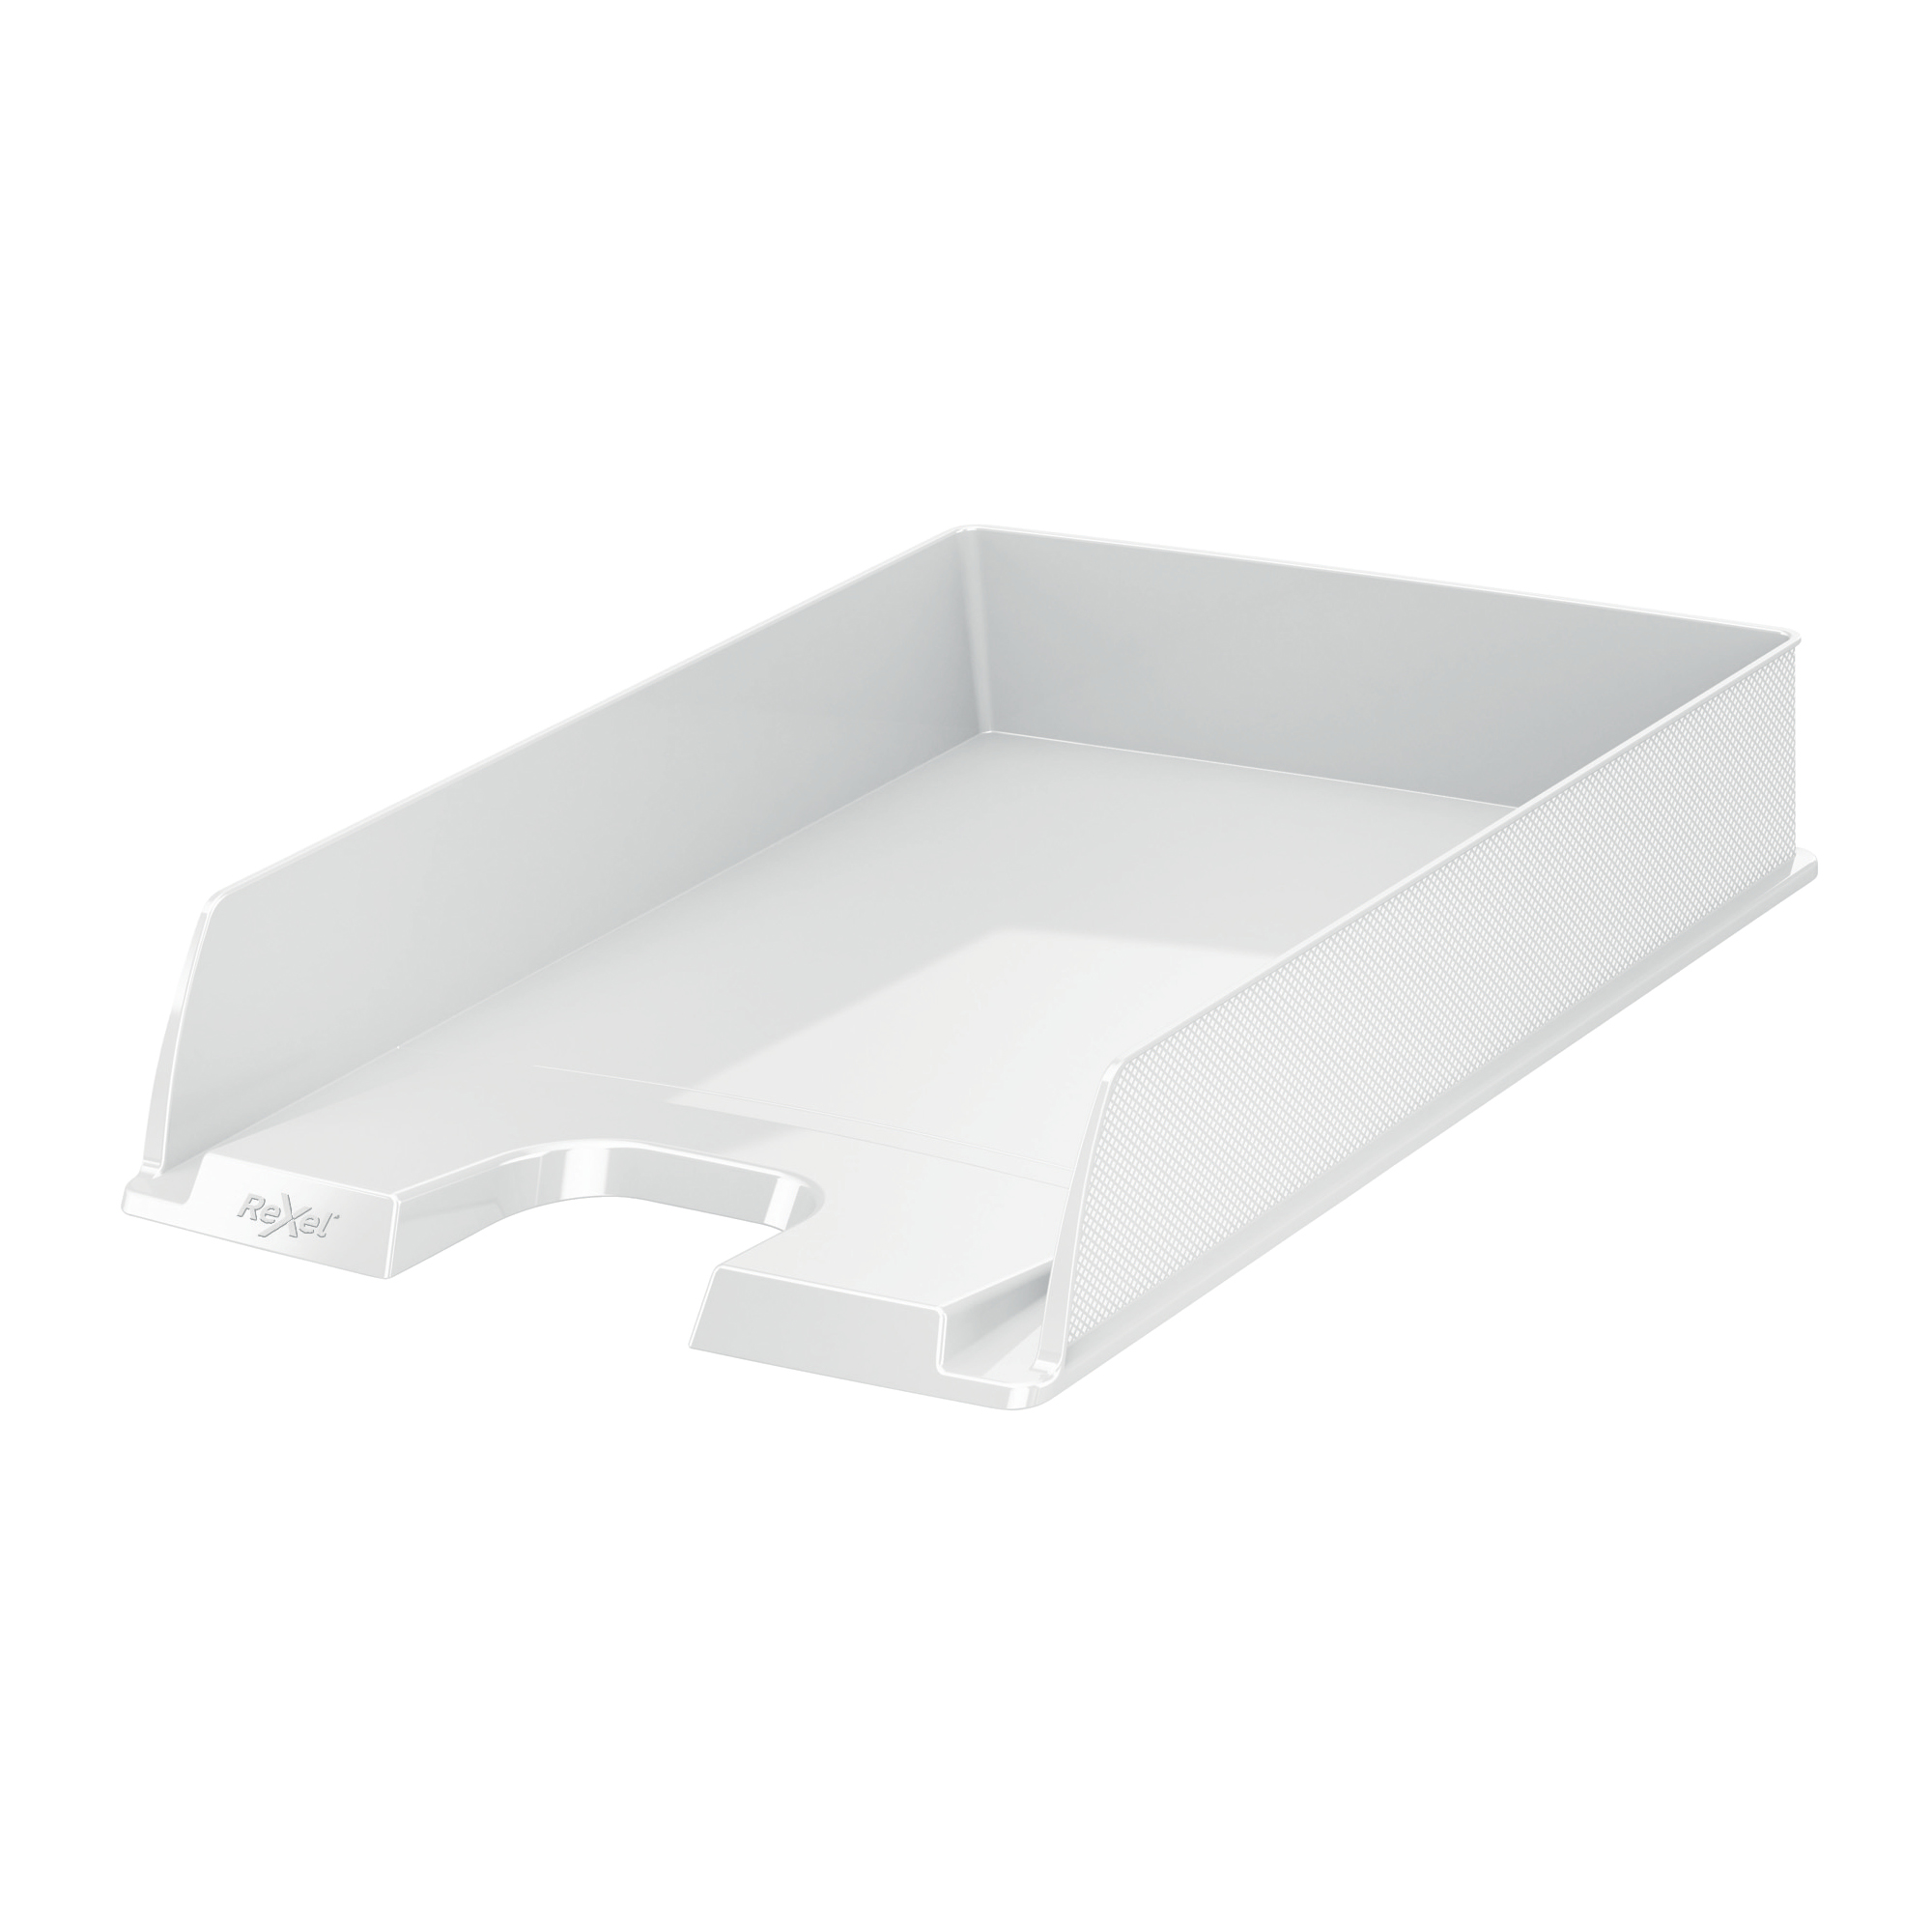 Desktop trays or organizers Rexel Choices Letter Tray PP A4 254x350x61mm White Ref 2115602